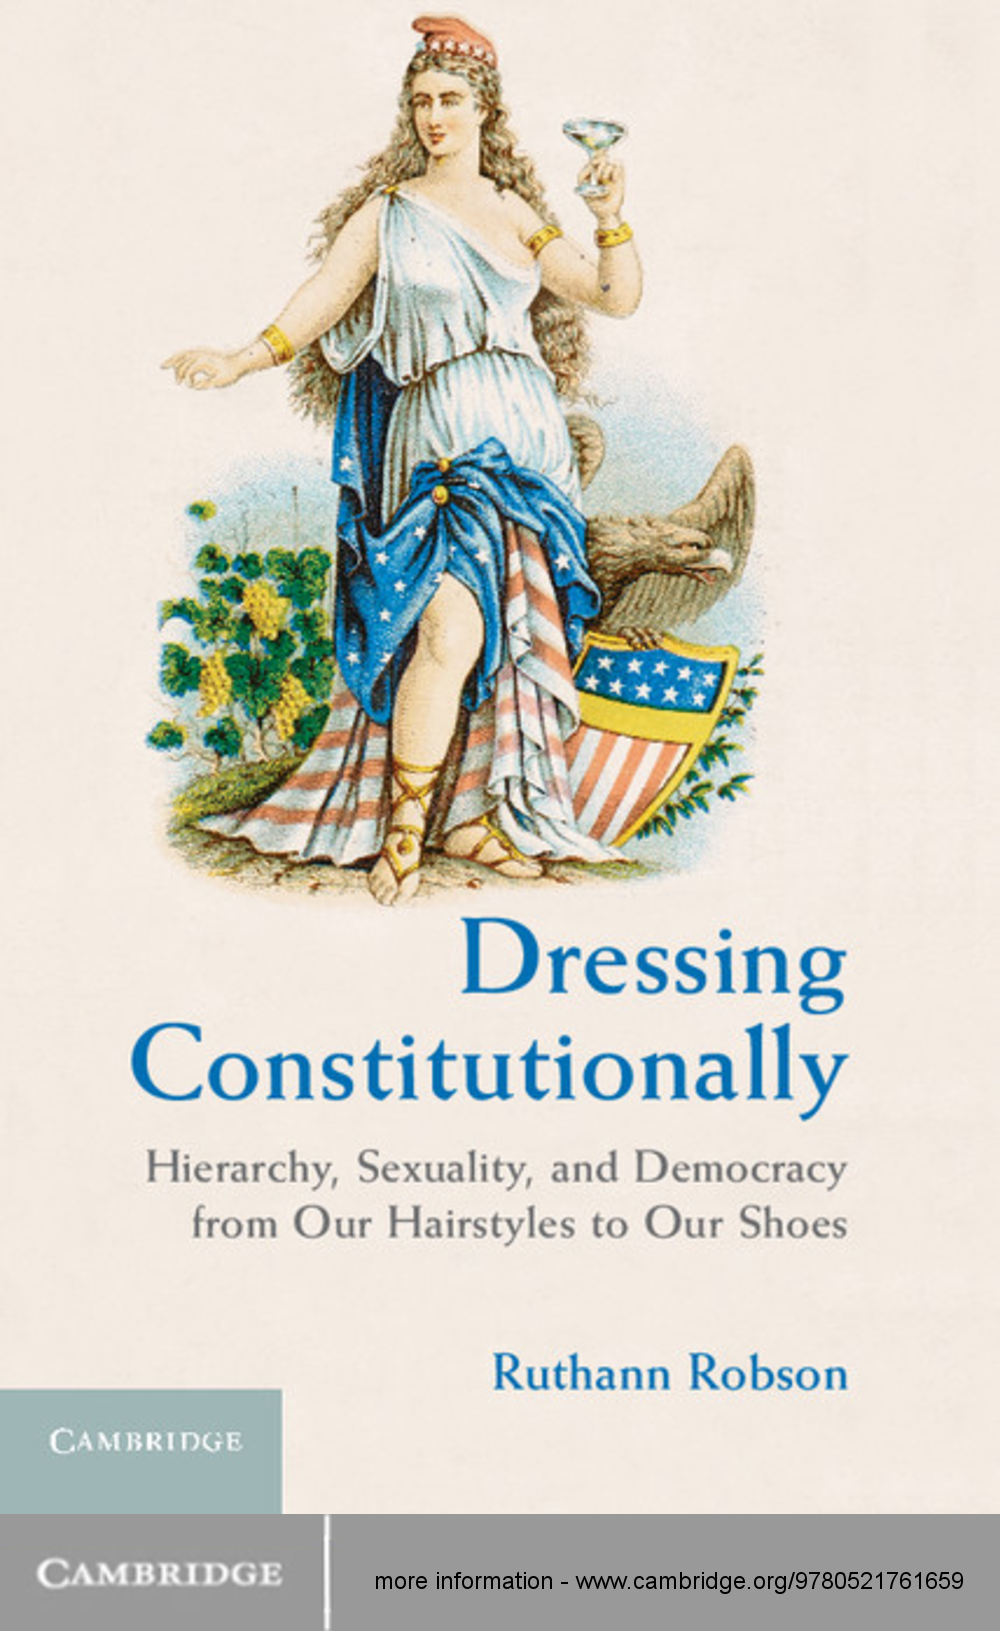 Dressing Constitutionally Hierarchy,  Sexuality,  and Democracy from Our Hairstyles to Our Shoes